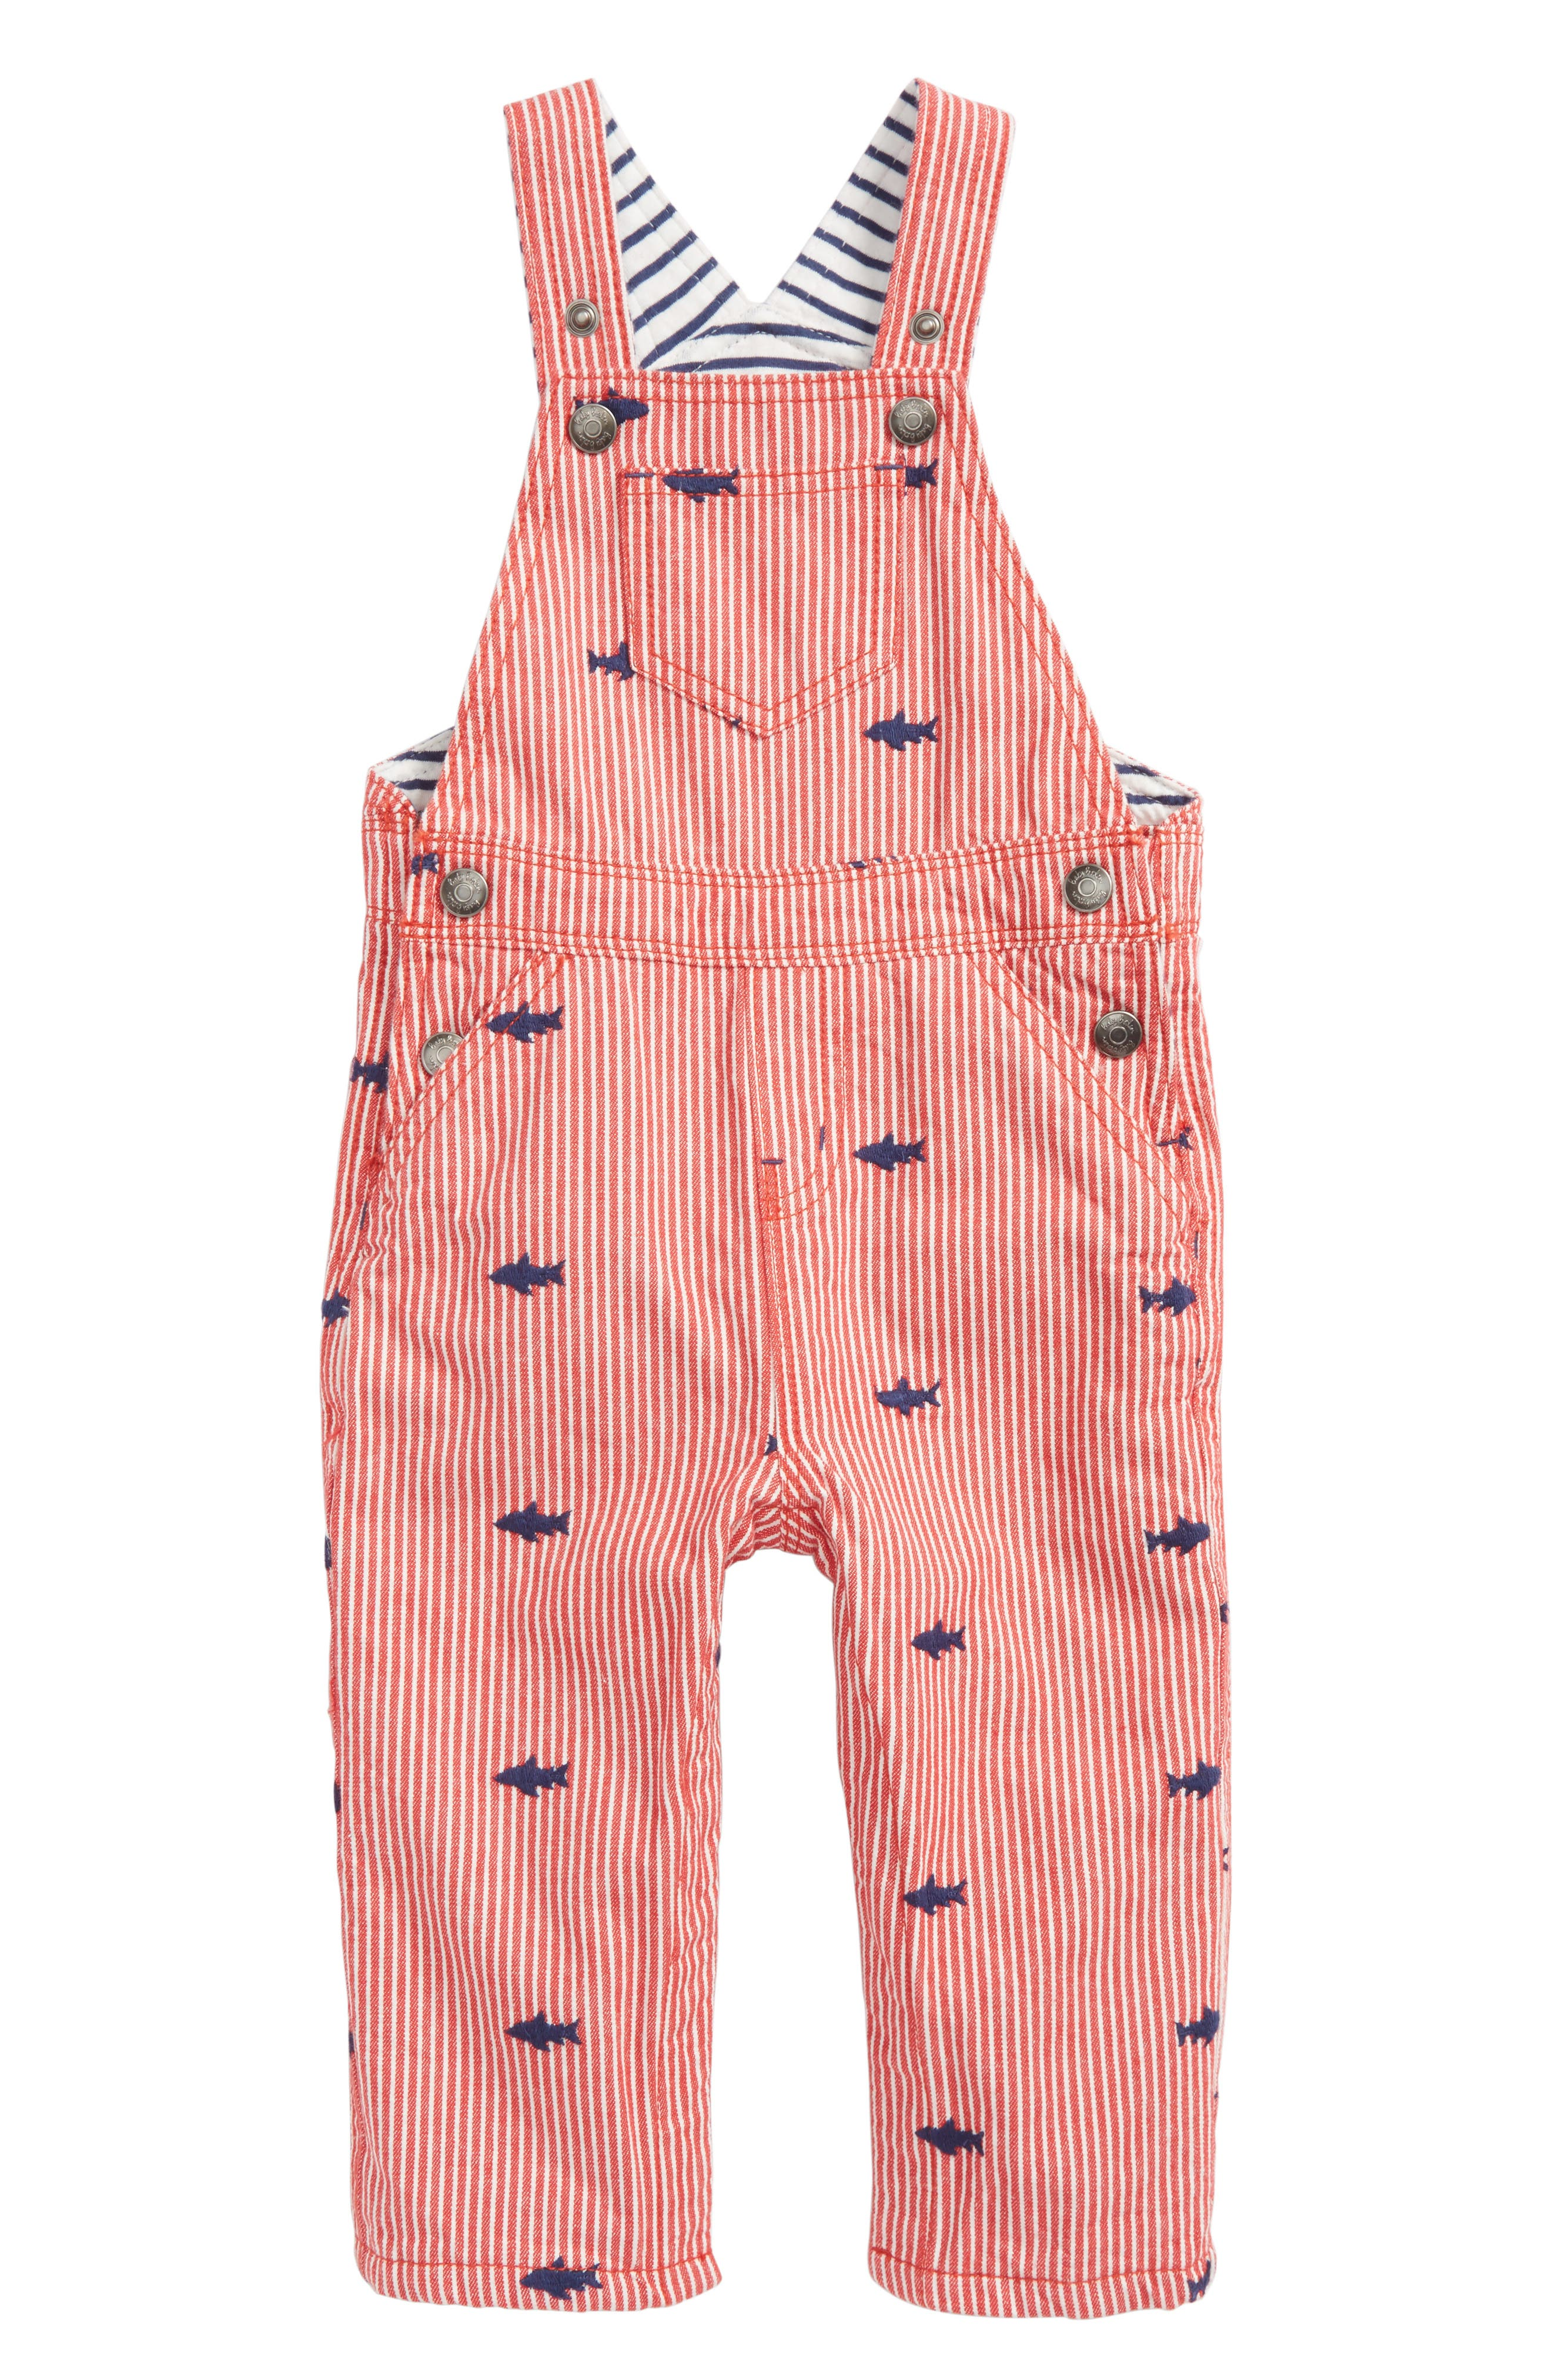 Main Image - Mini Boden Classic Dungaree Overalls (Baby Boys & Toddler Boys)